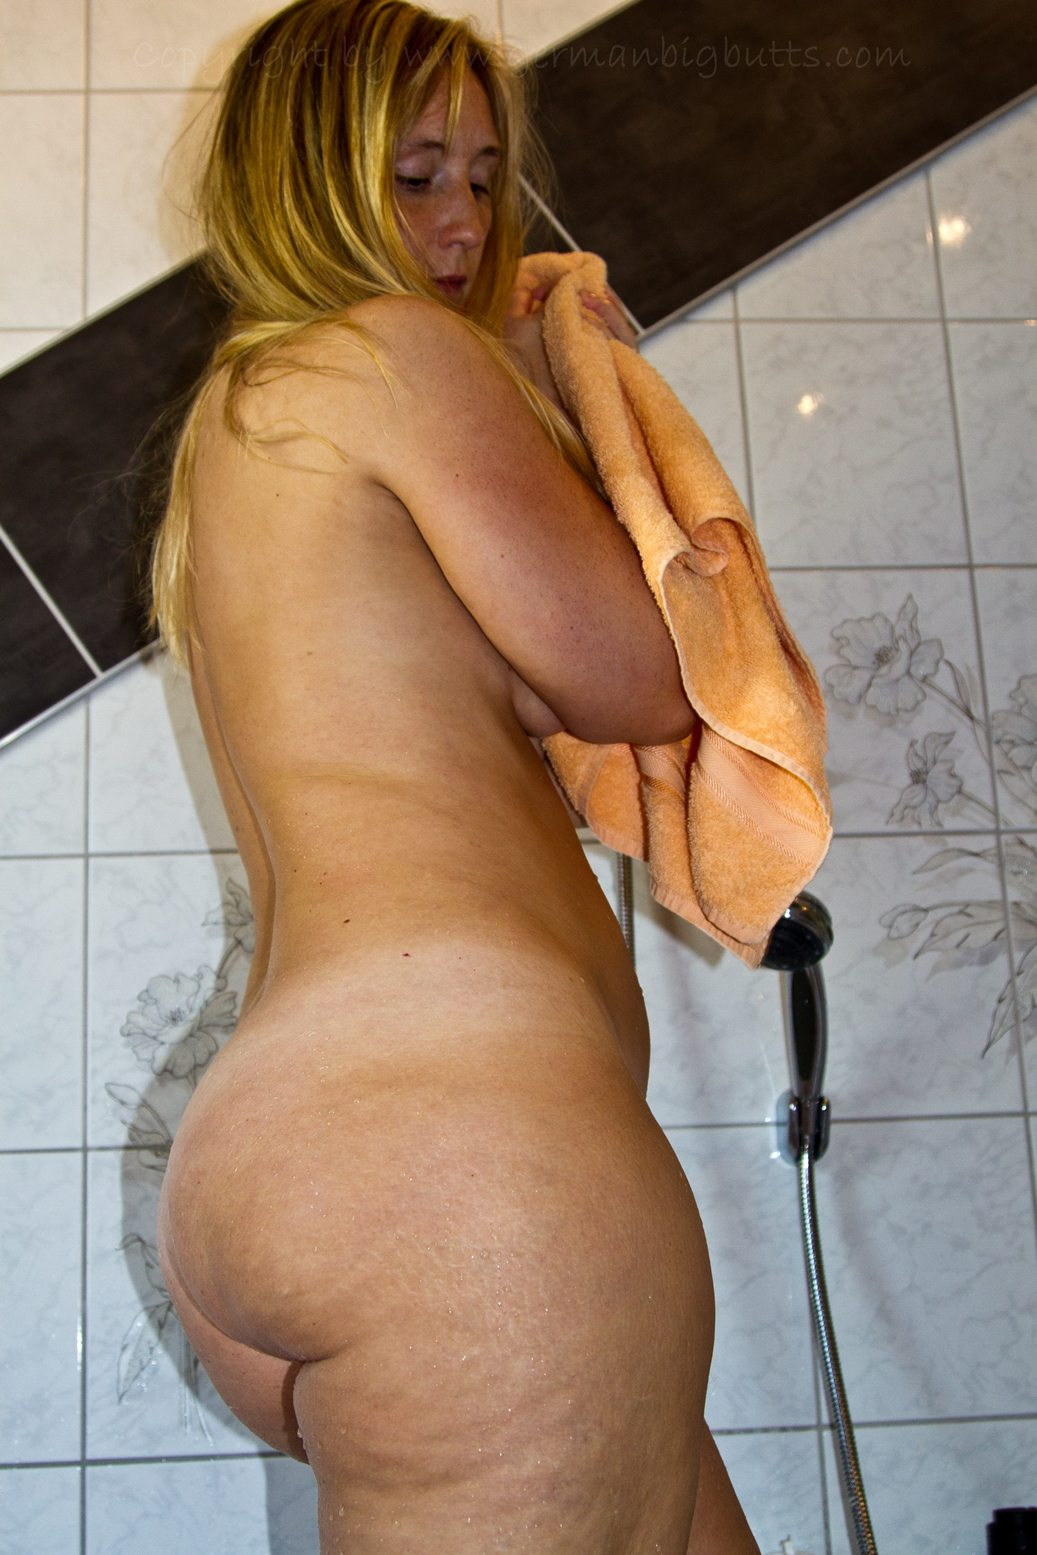 woman peeing while bent over